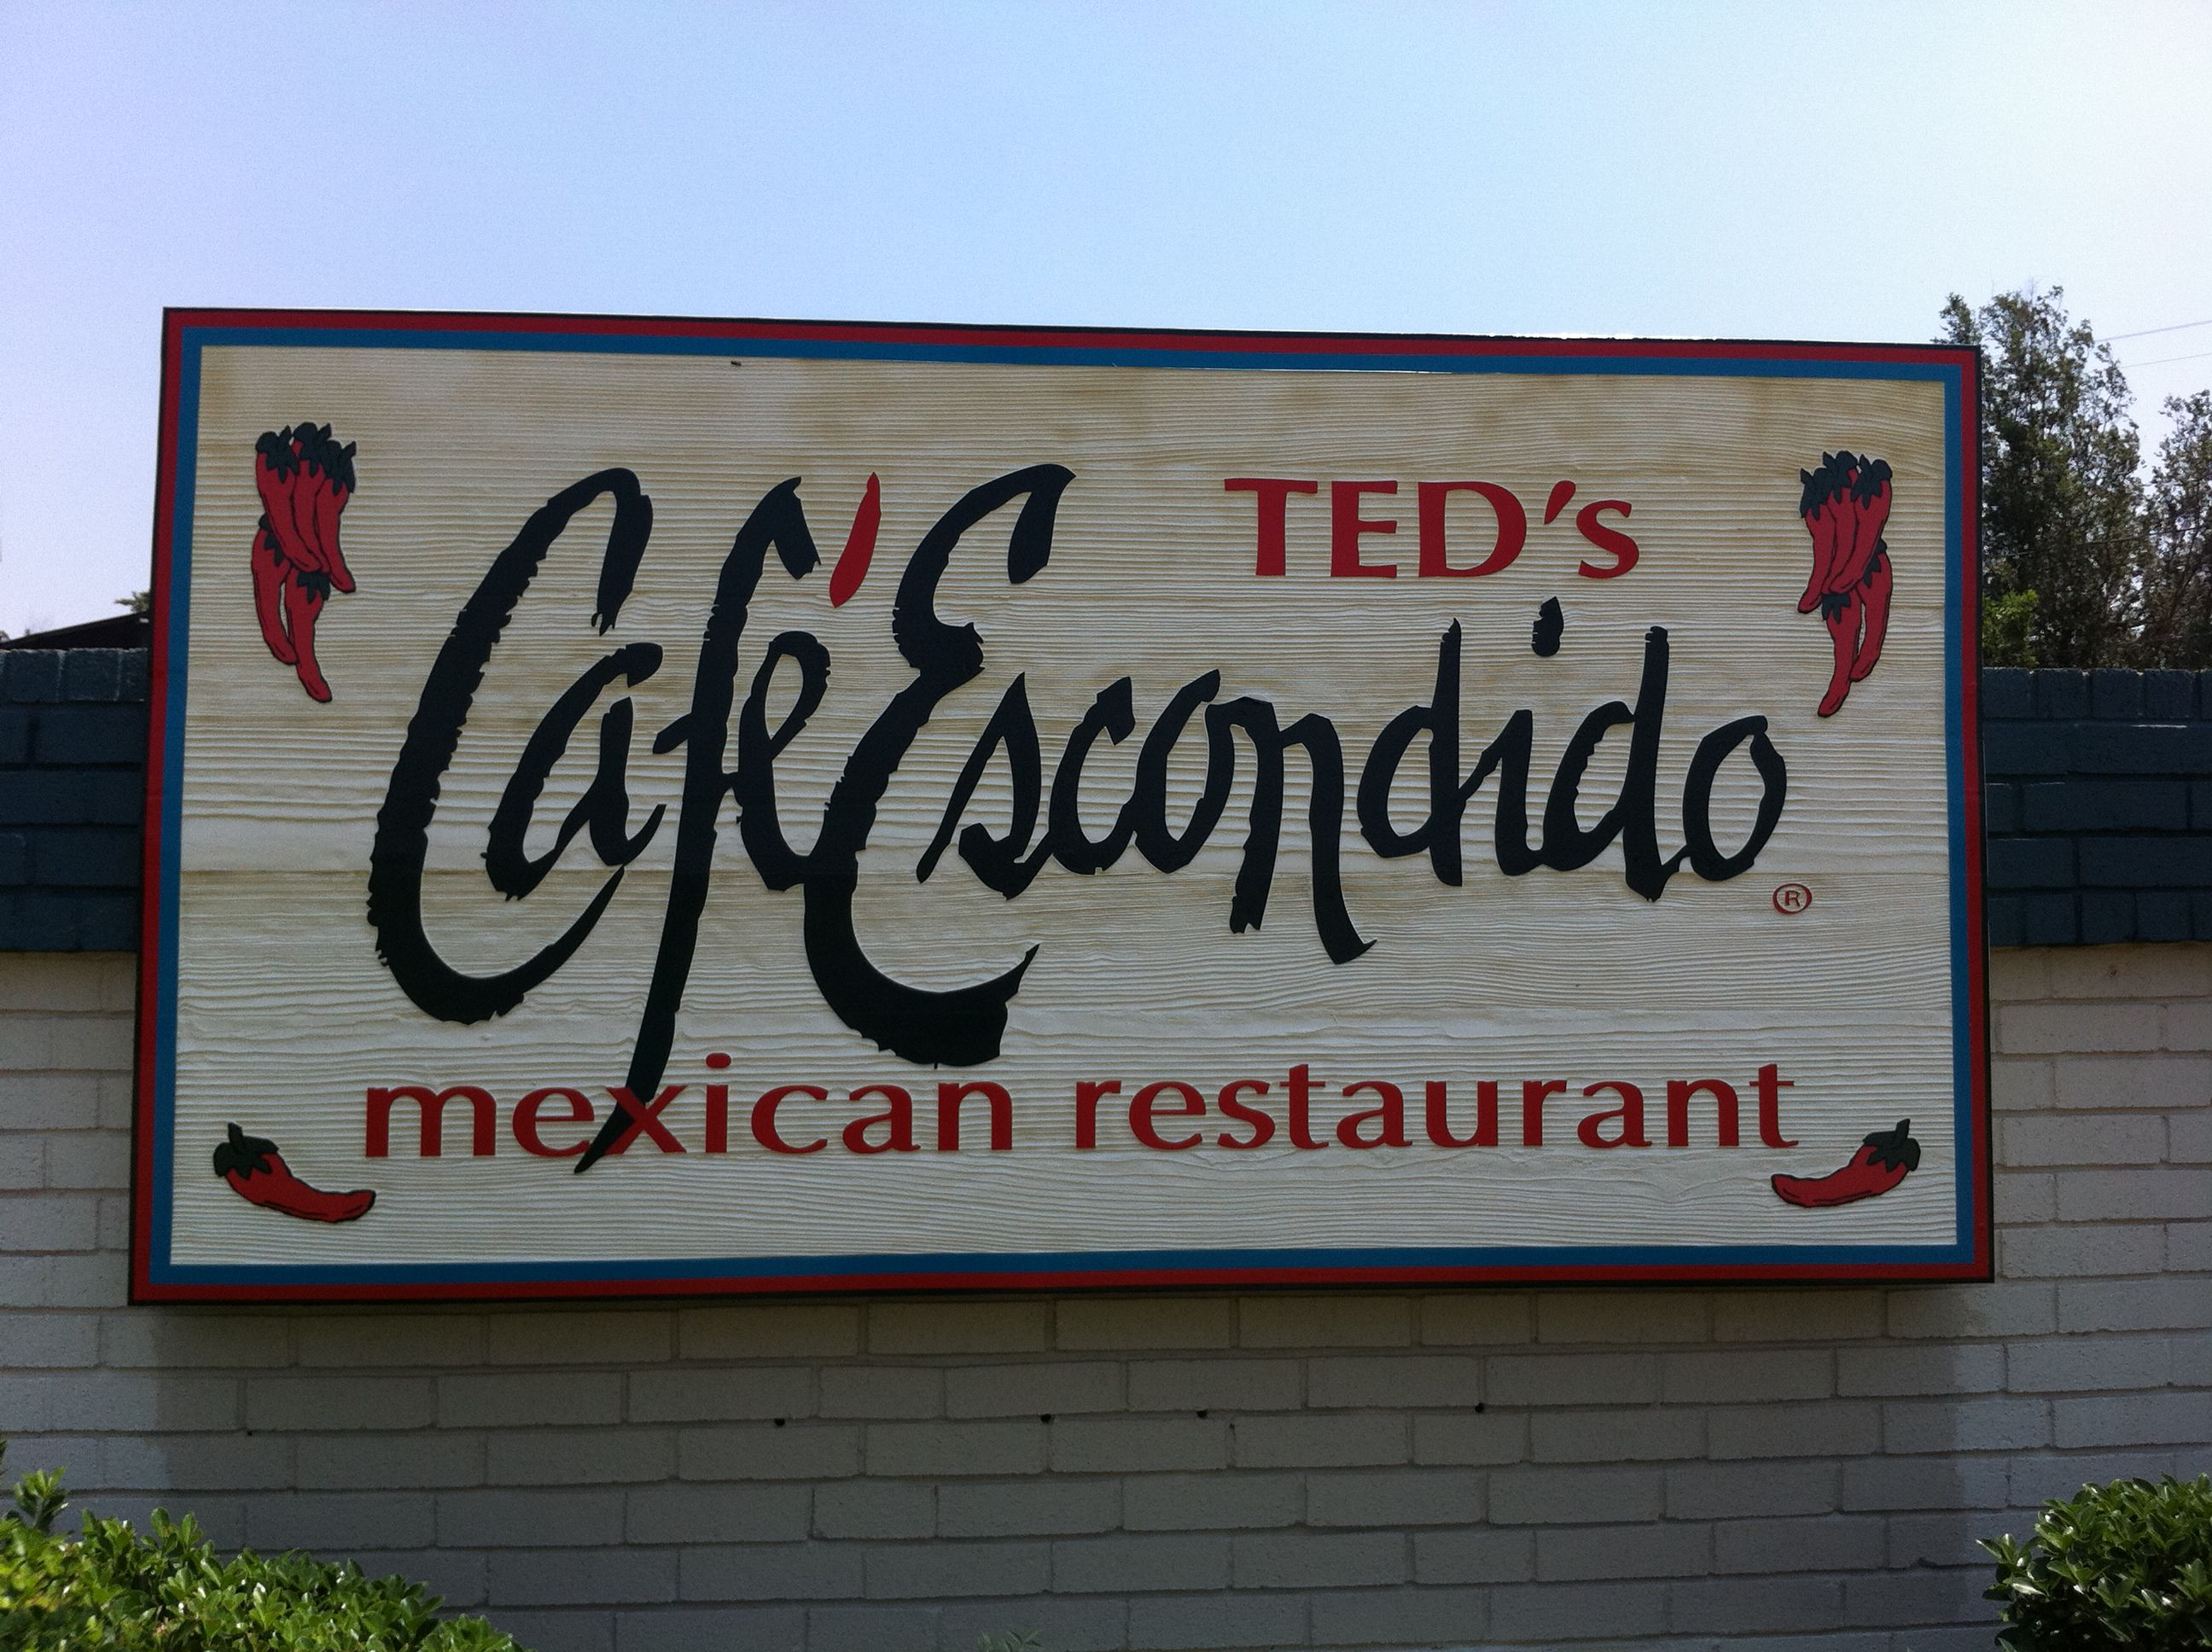 Ted S Cafe Escondido Mexican Restaurant Oklahoma City Who